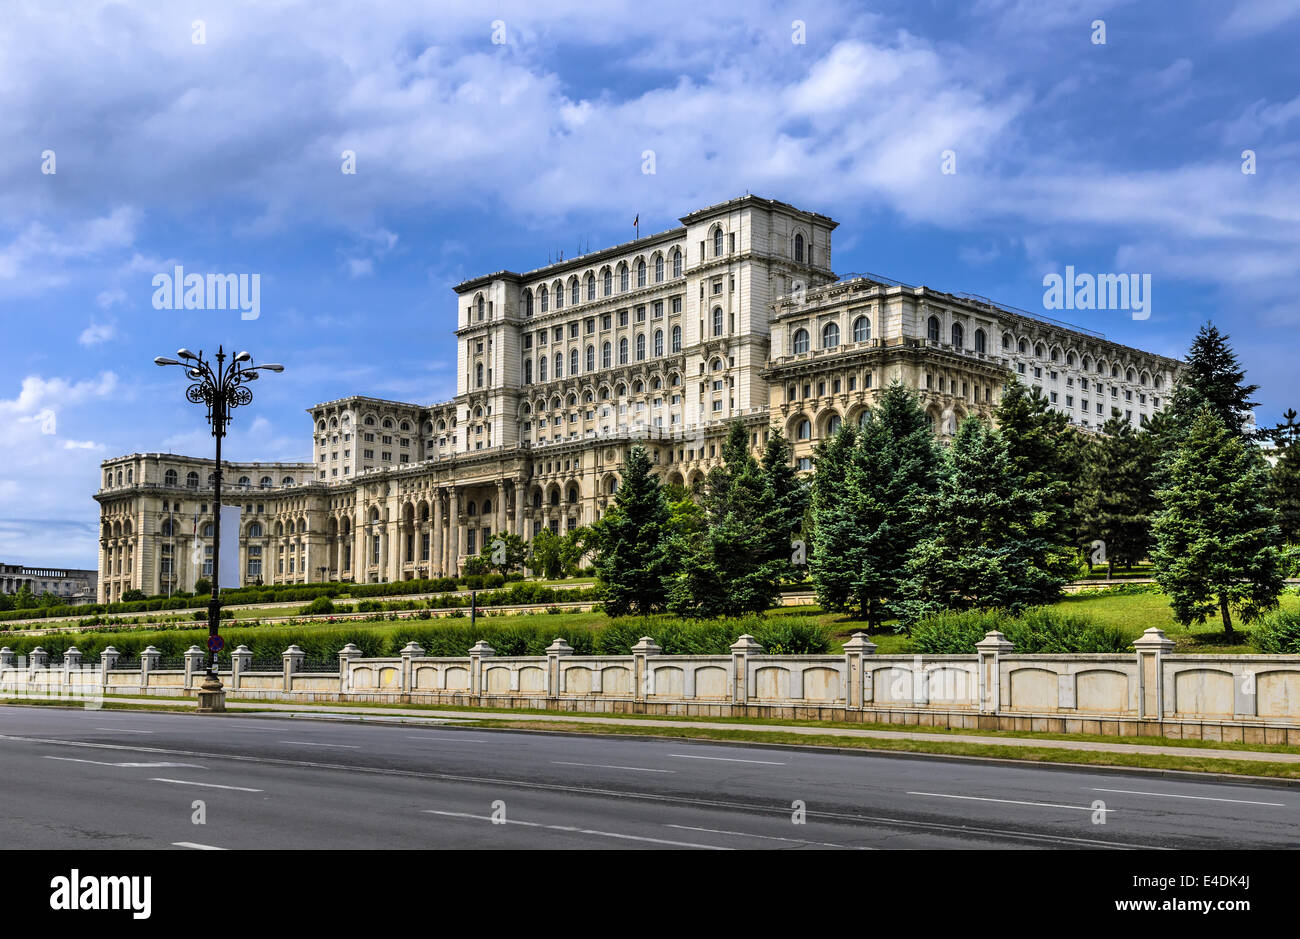 The Palace of the Parliament, the second largest building in the world, built by dictator Ceausescu in Bucharest, - Stock Image